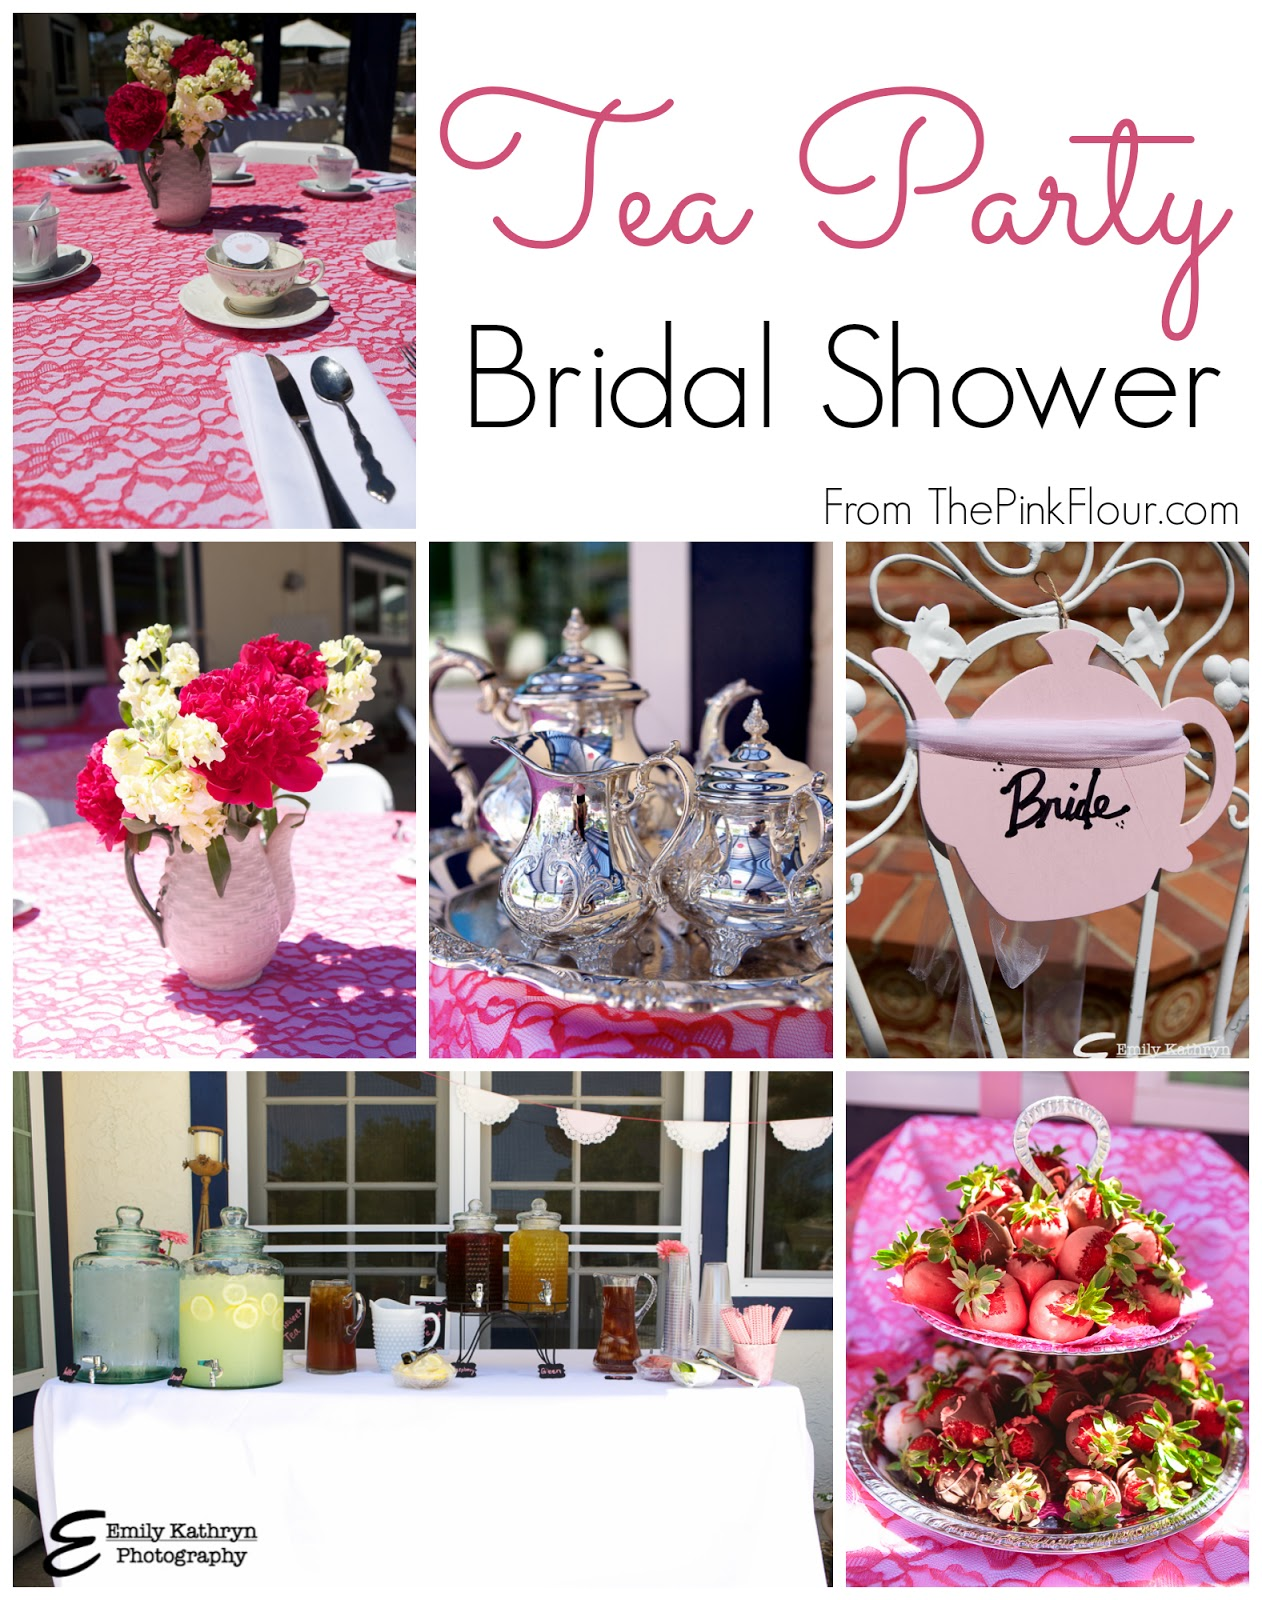 Tea Party Bridal Shower  a modern spin on a traditional theme from